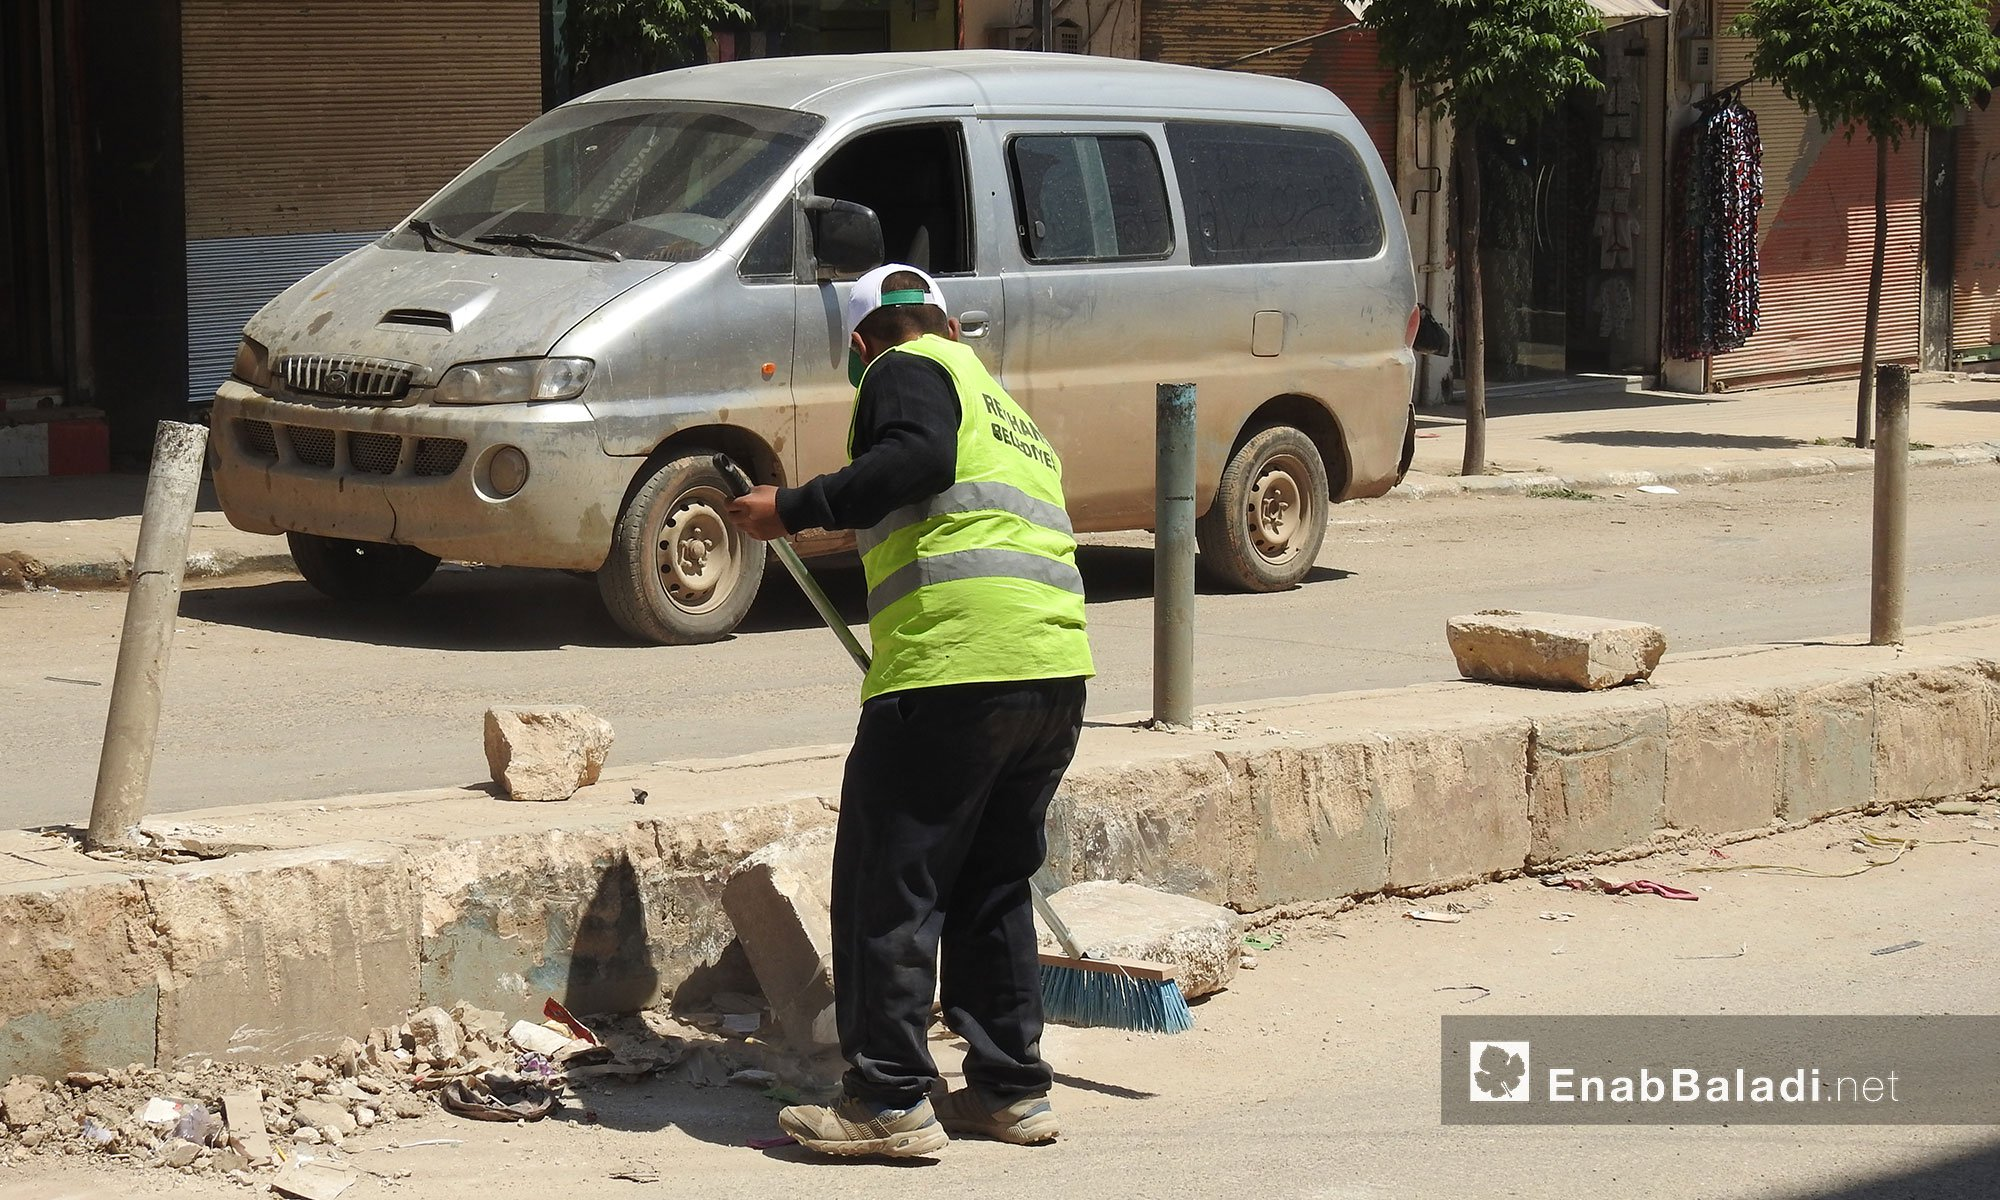 A cleaner on the streets on the city of Afrin, Northern Aleppo – April 25. 2018 (Enab Baladi)